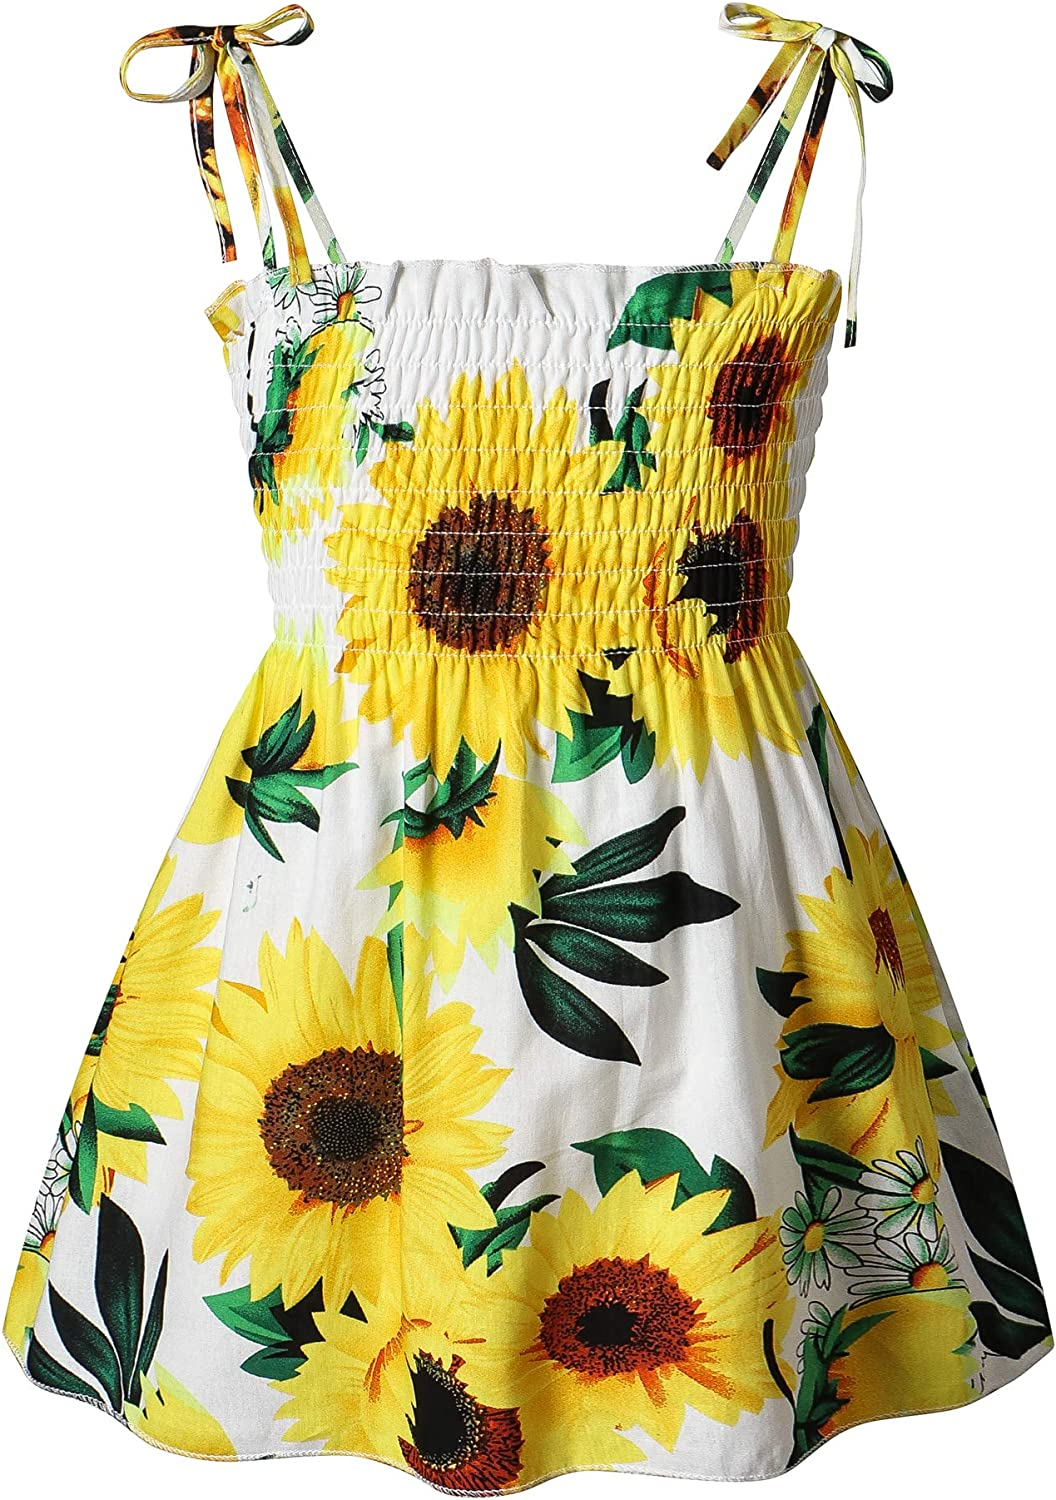 New York Mall Toddler Baby Fixed price for sale Girl Floral Dresses Strap Elastic T Sleeveless Kids